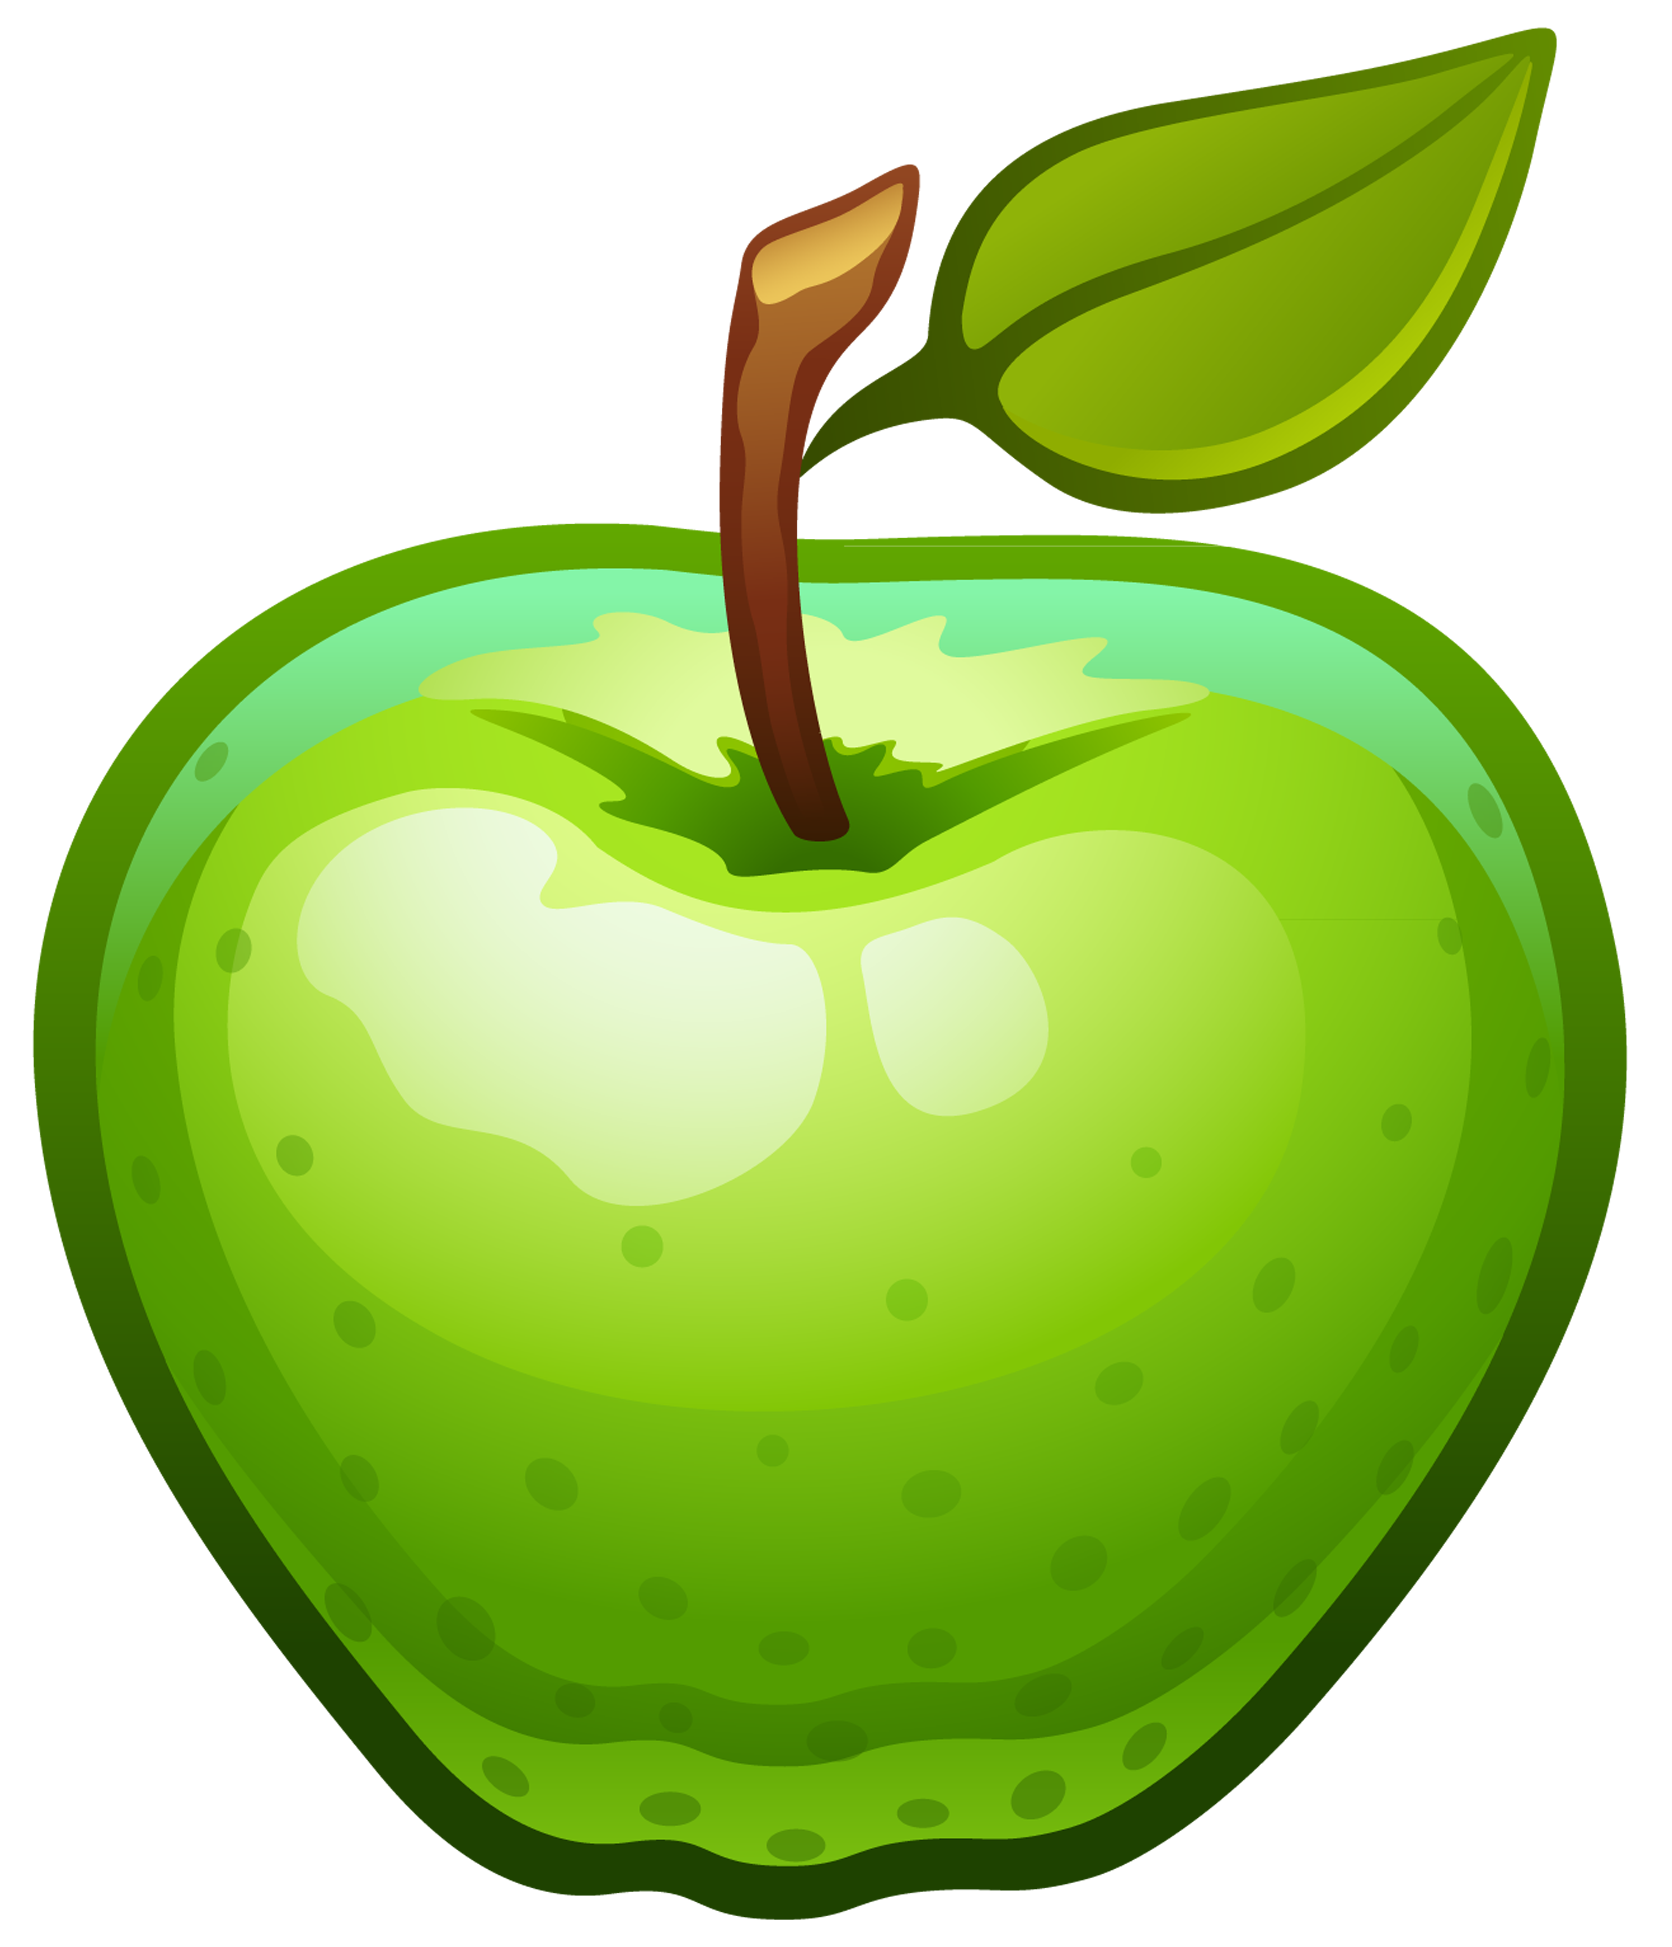 Green clipart png. Large painted apple gallery